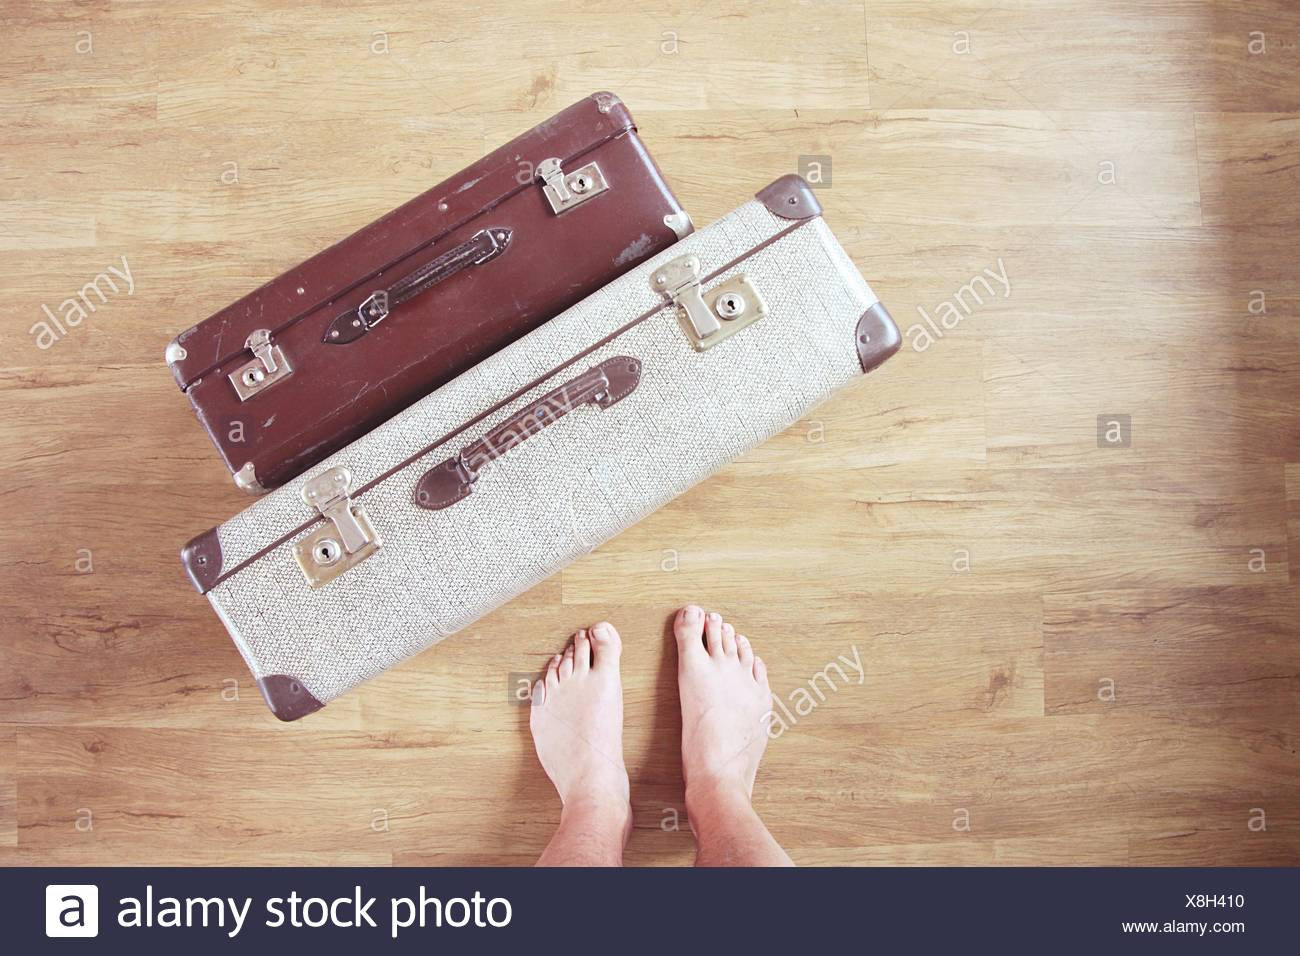 Low Section Of Man With Old-Fashioned Suitcases On Hardwood Floor - Stock Image